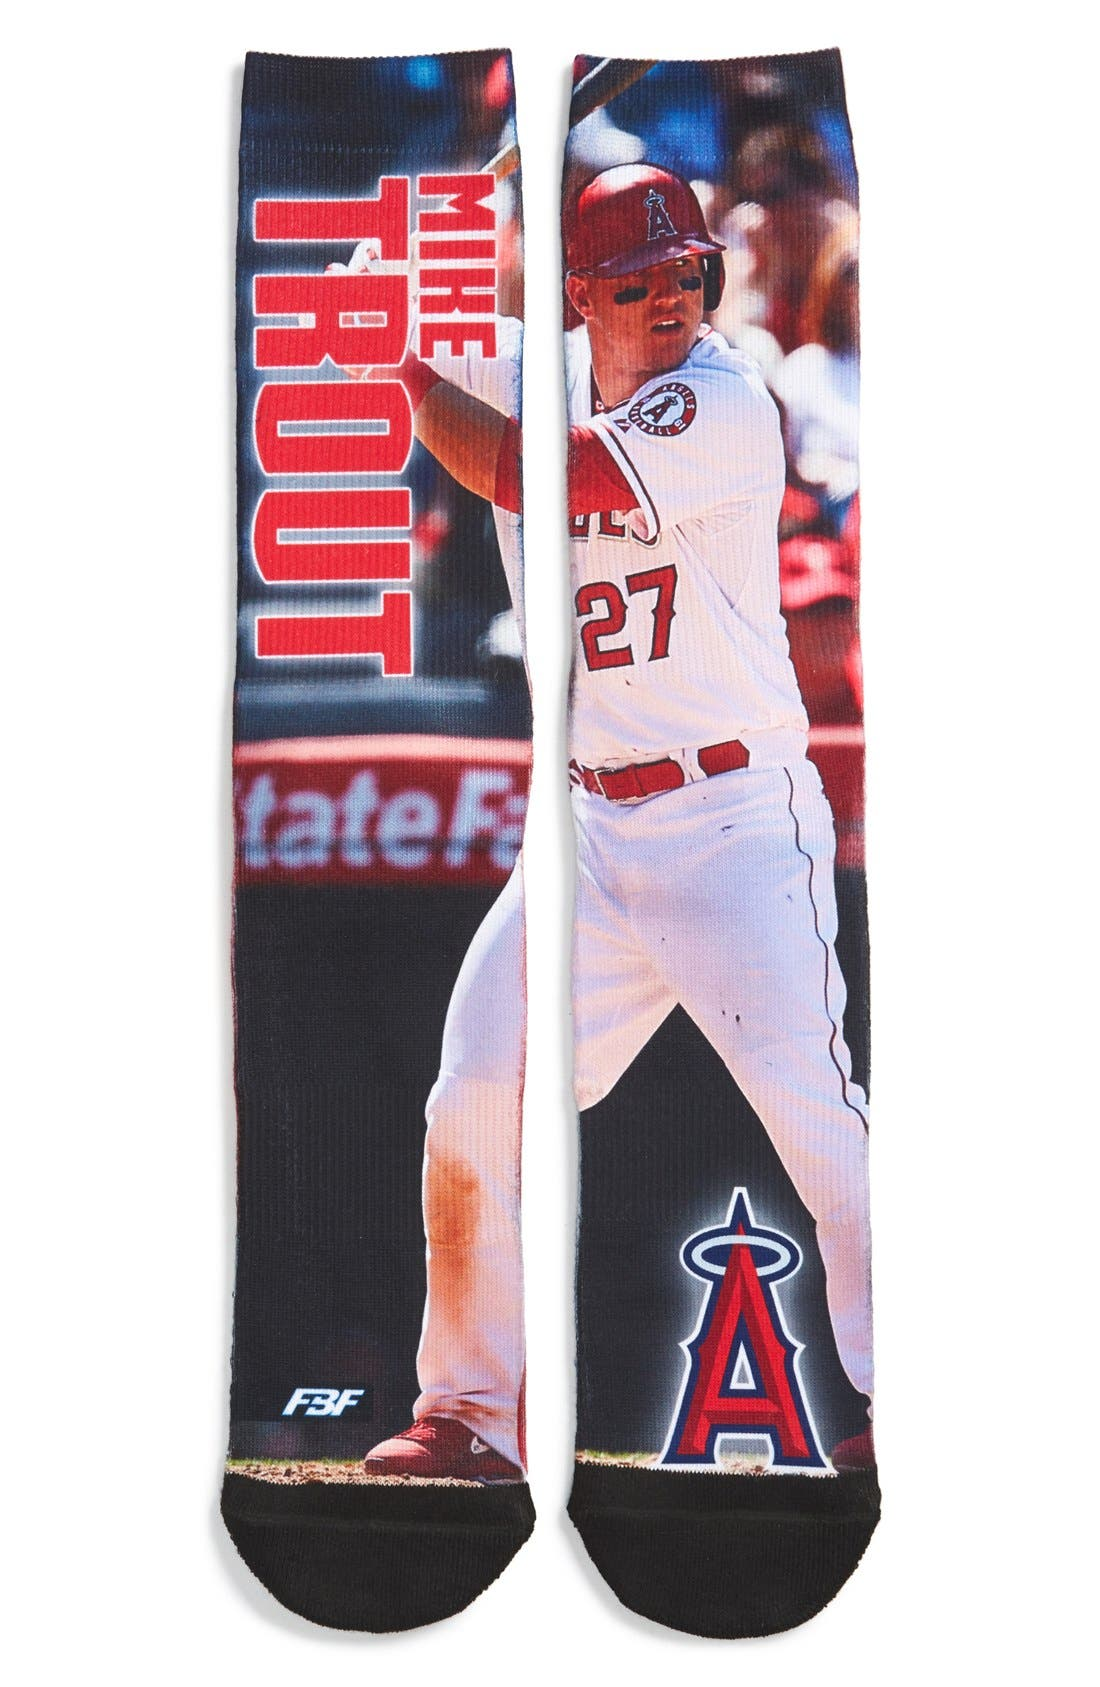 'Los Angeles Angels - Mike Trout' Socks,                             Main thumbnail 1, color,                             649